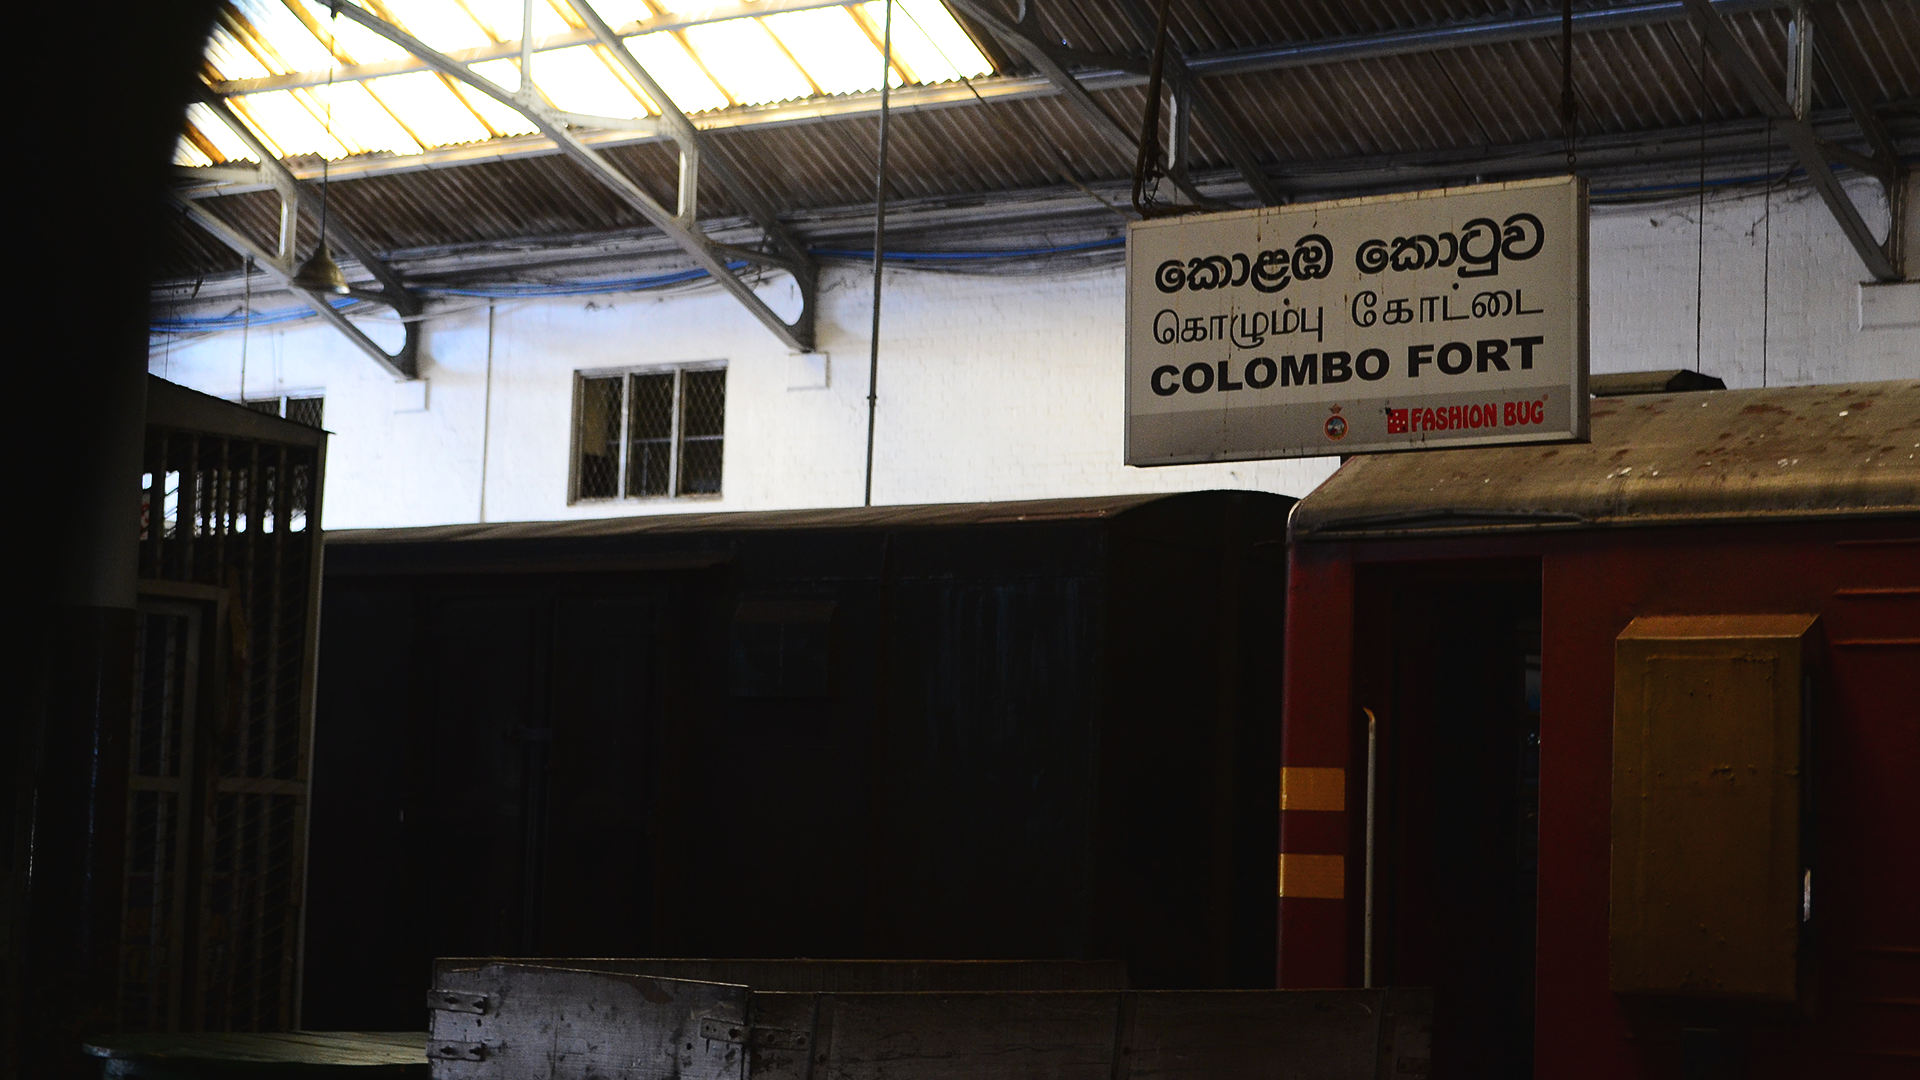 Llegando a Colombo Fort.